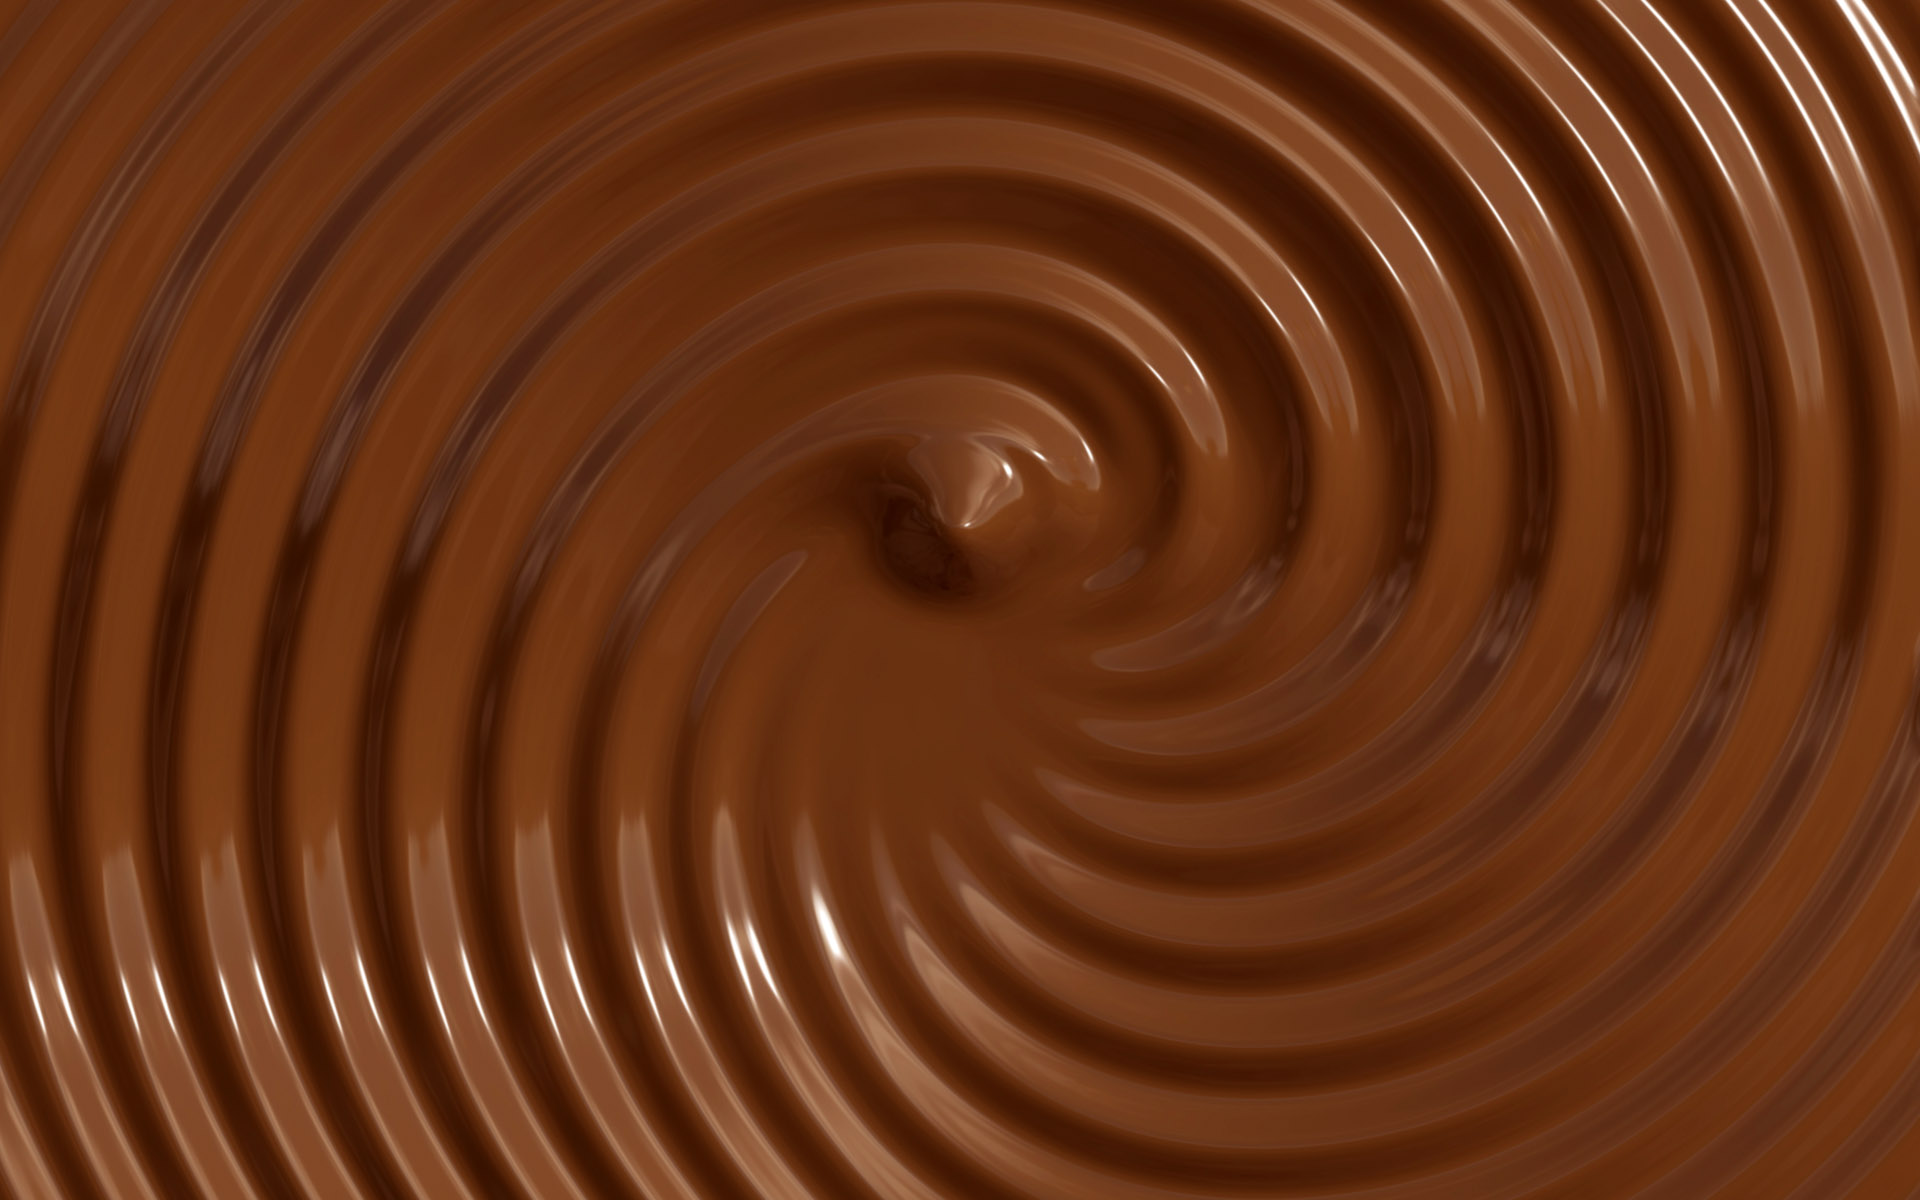 chocolate, texture, photo, background, download, hot chocolate, texture, chocolate